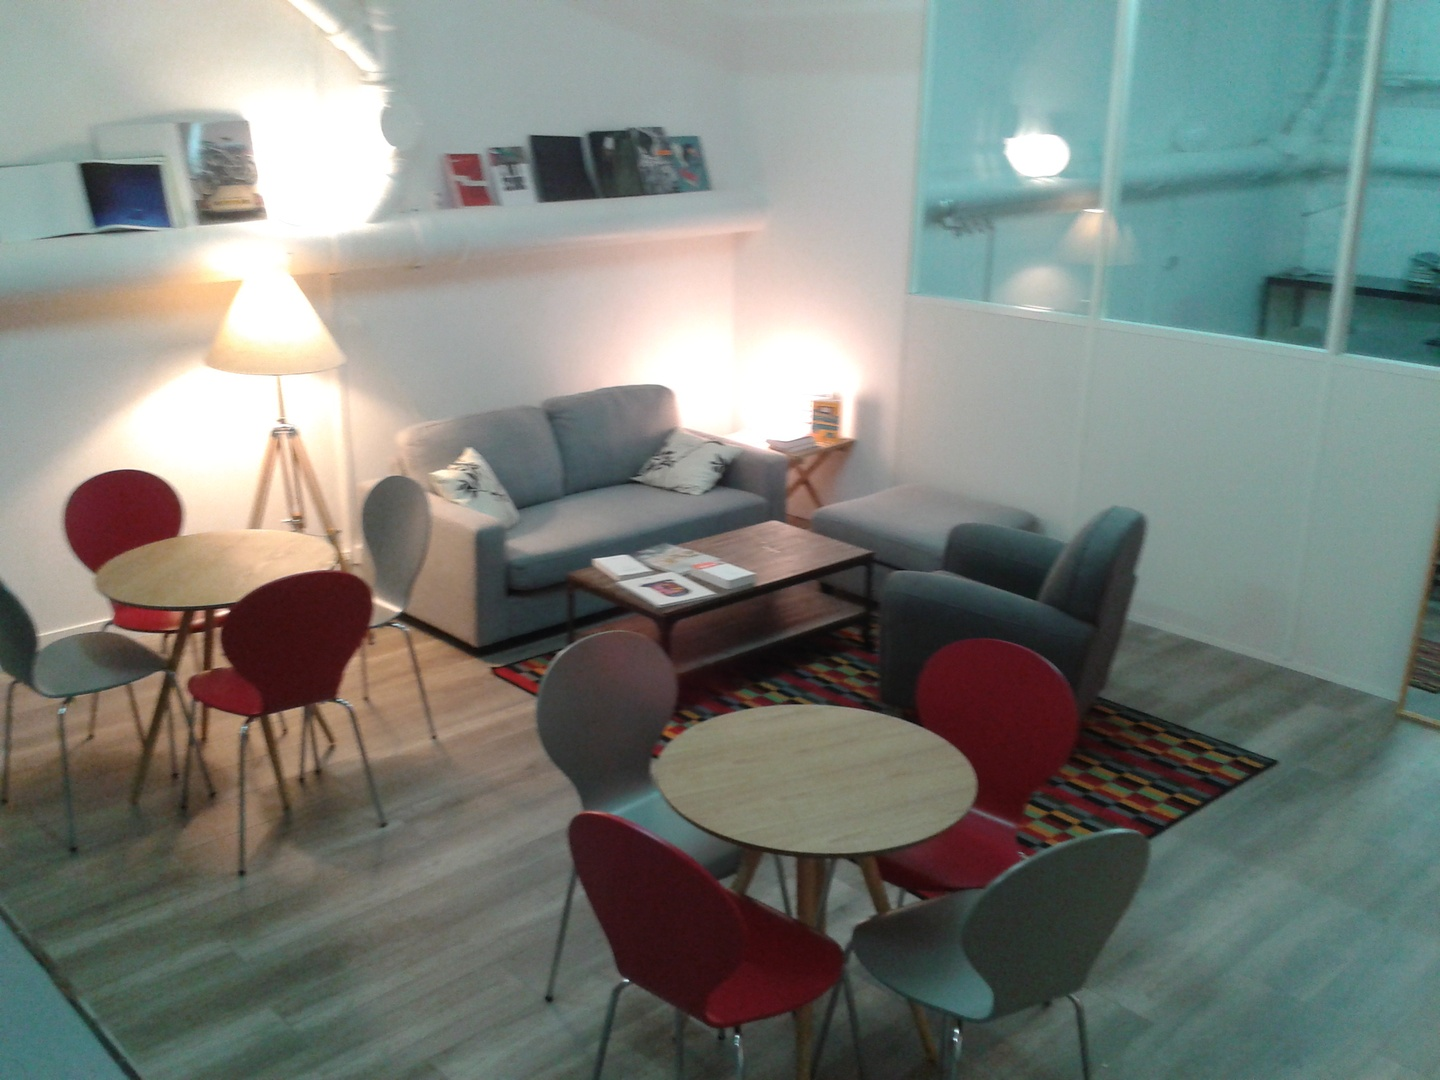 Paris corporate event venues Coworking space Fontaine o Livres image 4